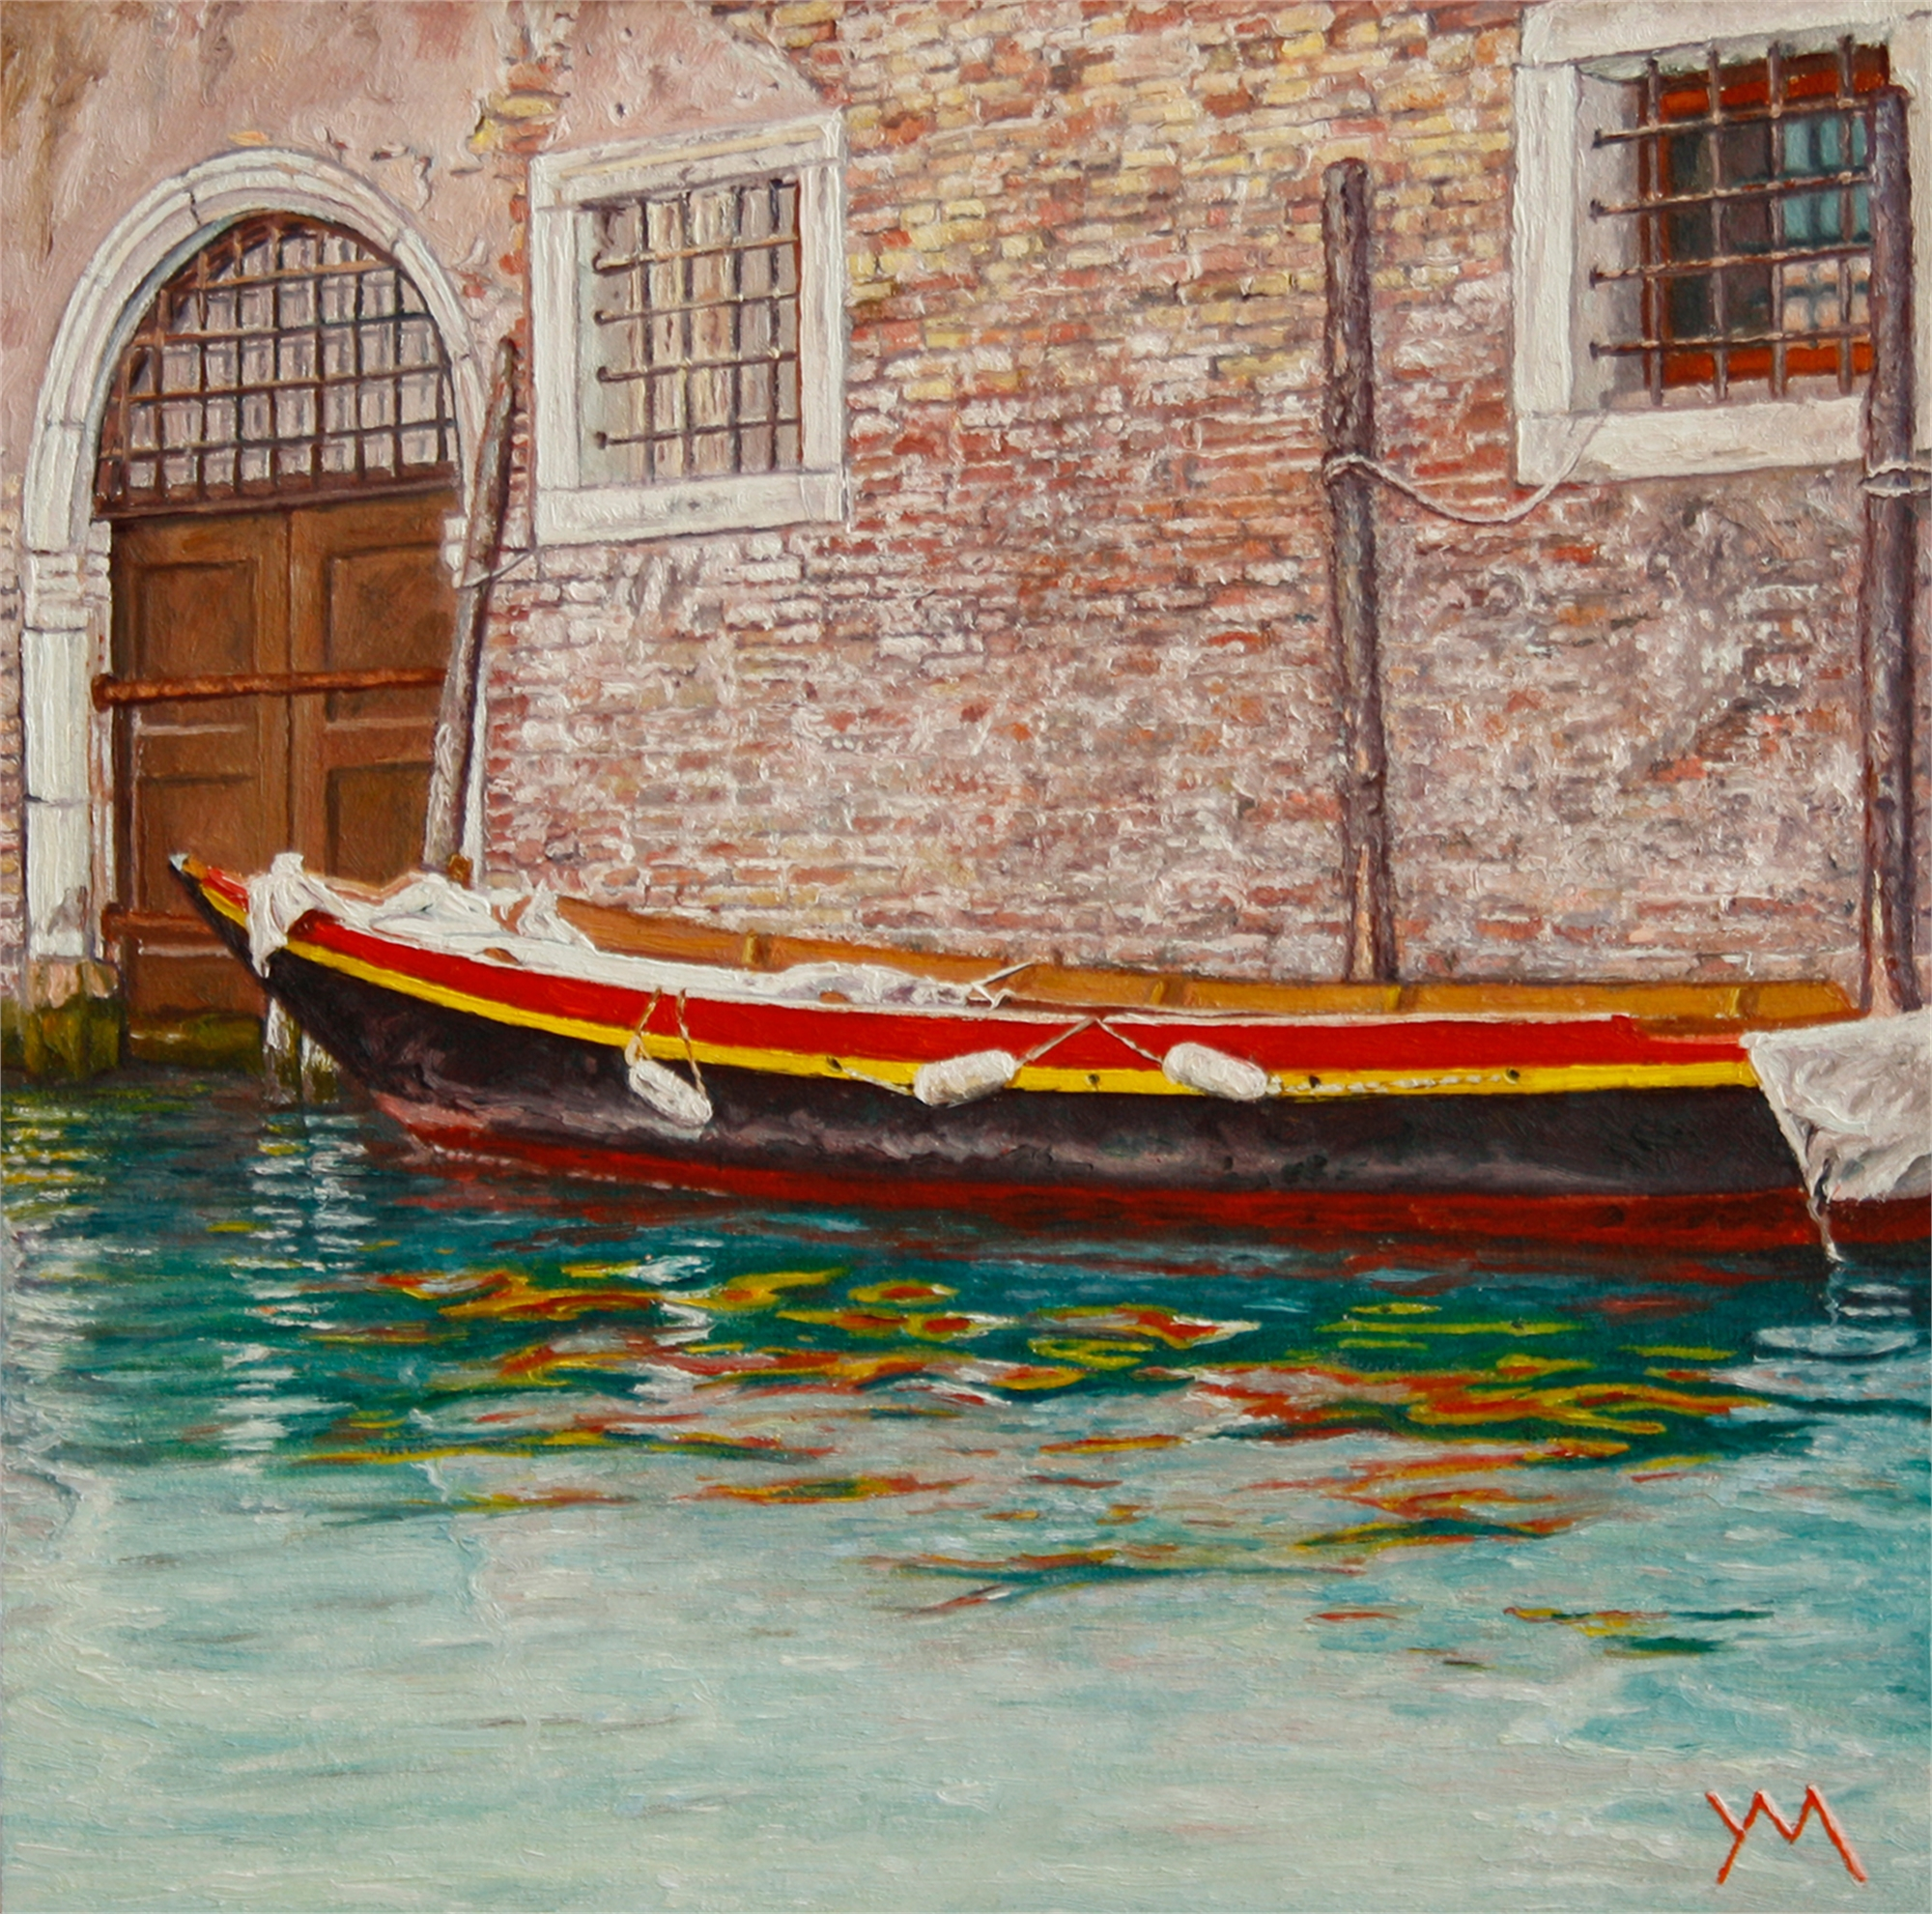 Reflections IV (Summer in Venice) by Yvonne Melchers